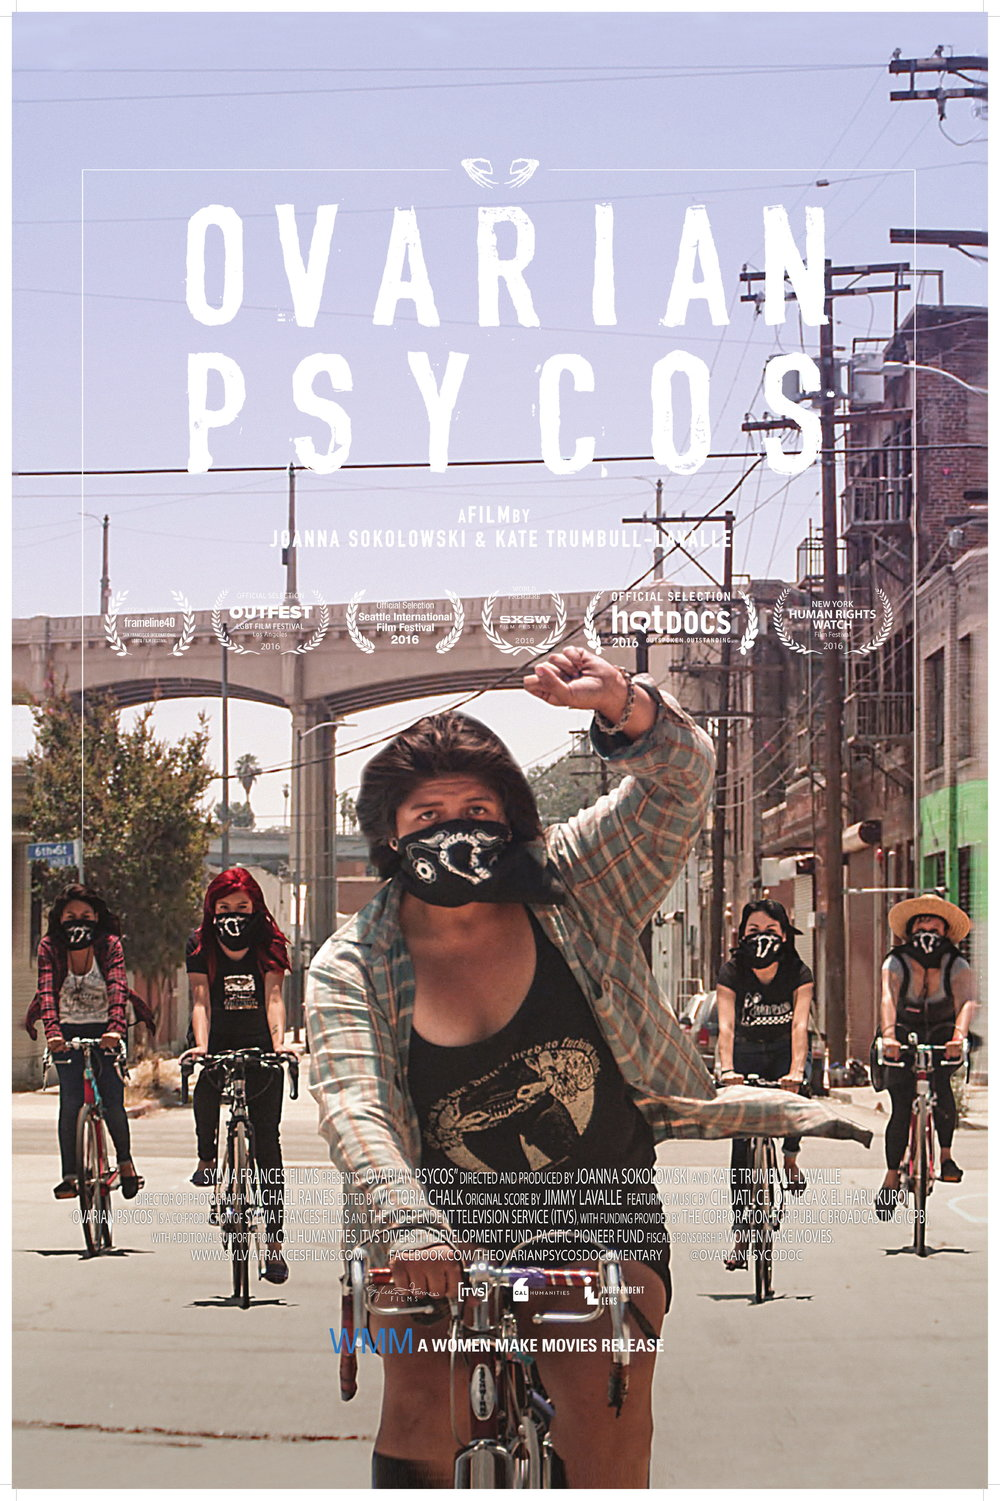 Ovarian Psycos    Riding at night through streets deemed dangerous in Eastside Los Angeles, the Ovarian Psycos use their bicycles to confront the violence in their lives. At the helm of the crew is founder Xela de la X, a single mother and...   Read More